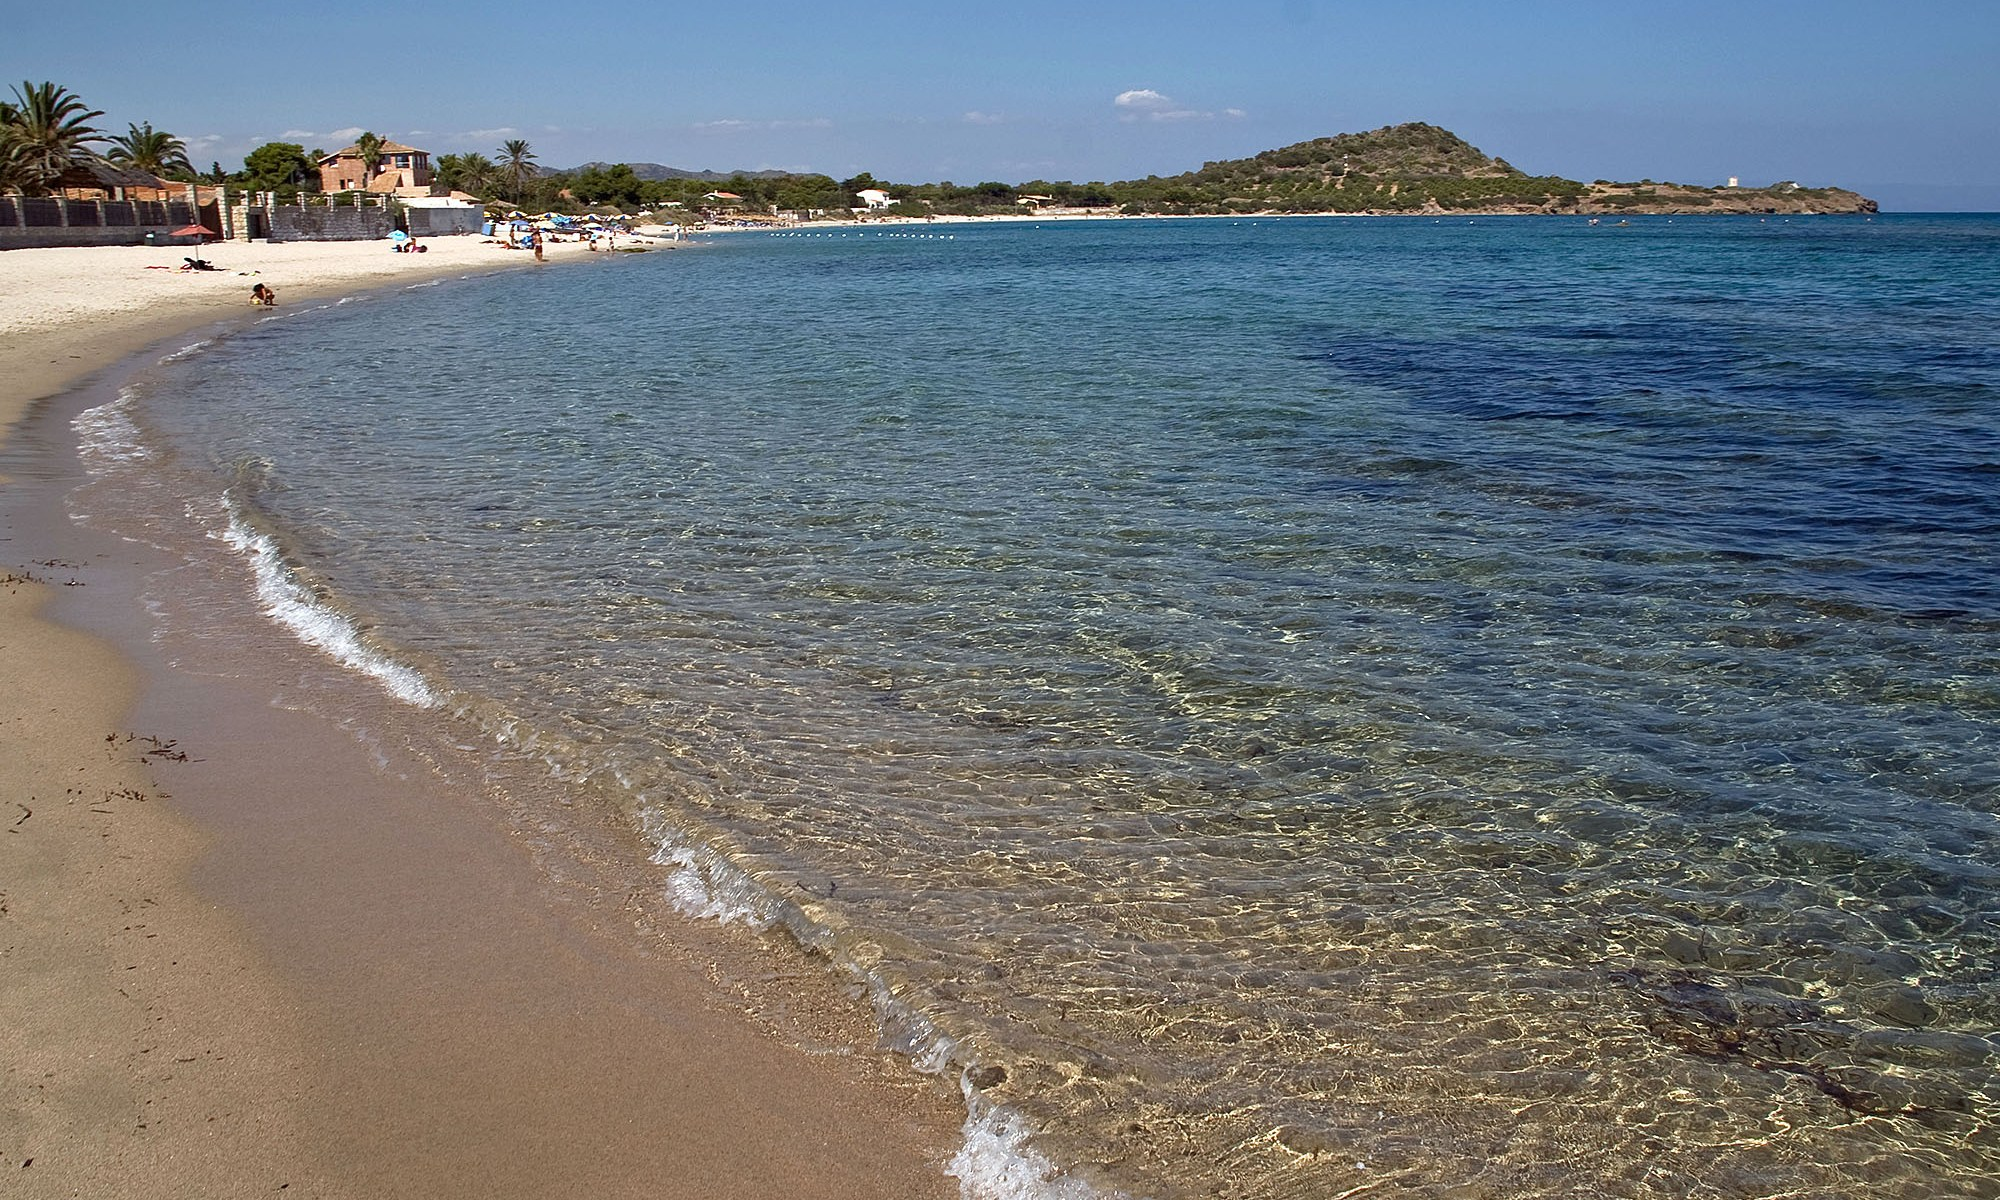 Beach at Pula, Sardinia, Italy